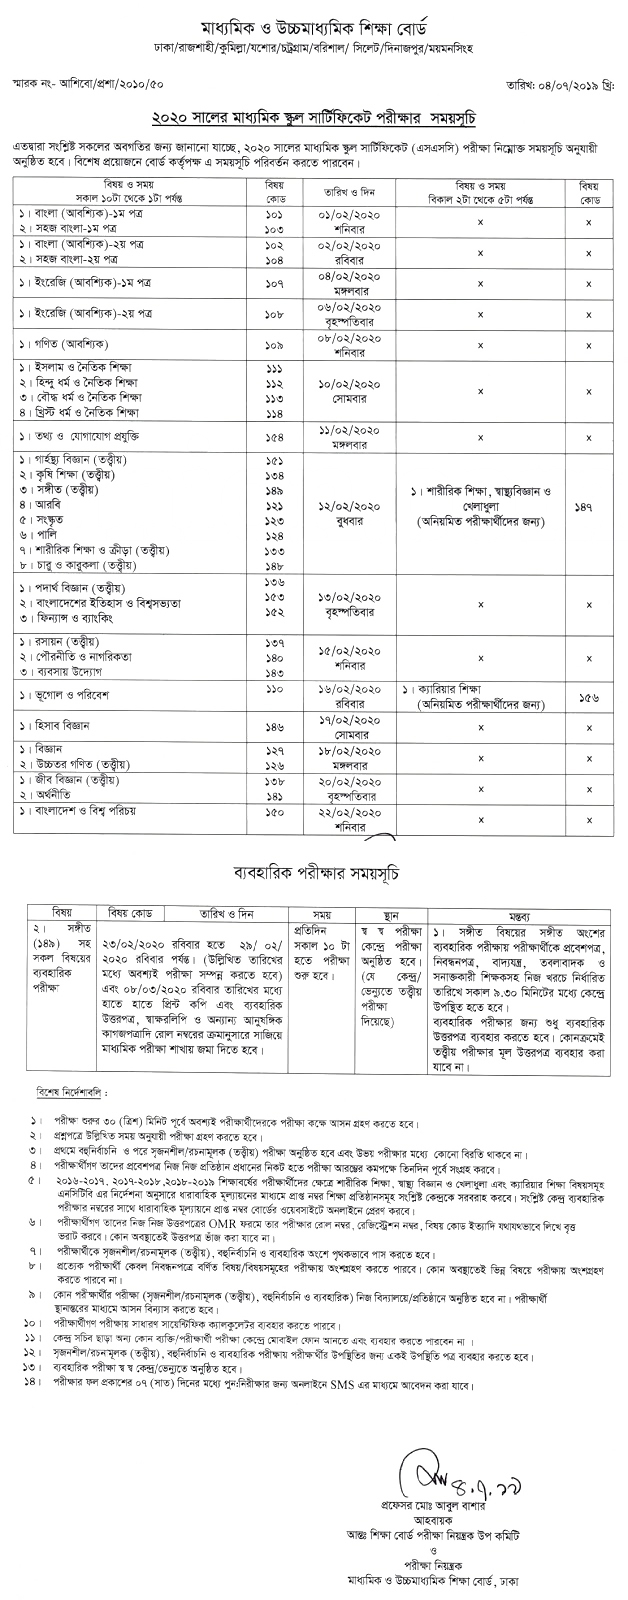 ssc routine 2020 has been published by Education Board BD and announced a circular in its website that it will be started from 02 February 2020 and will be end in 27 February 2020